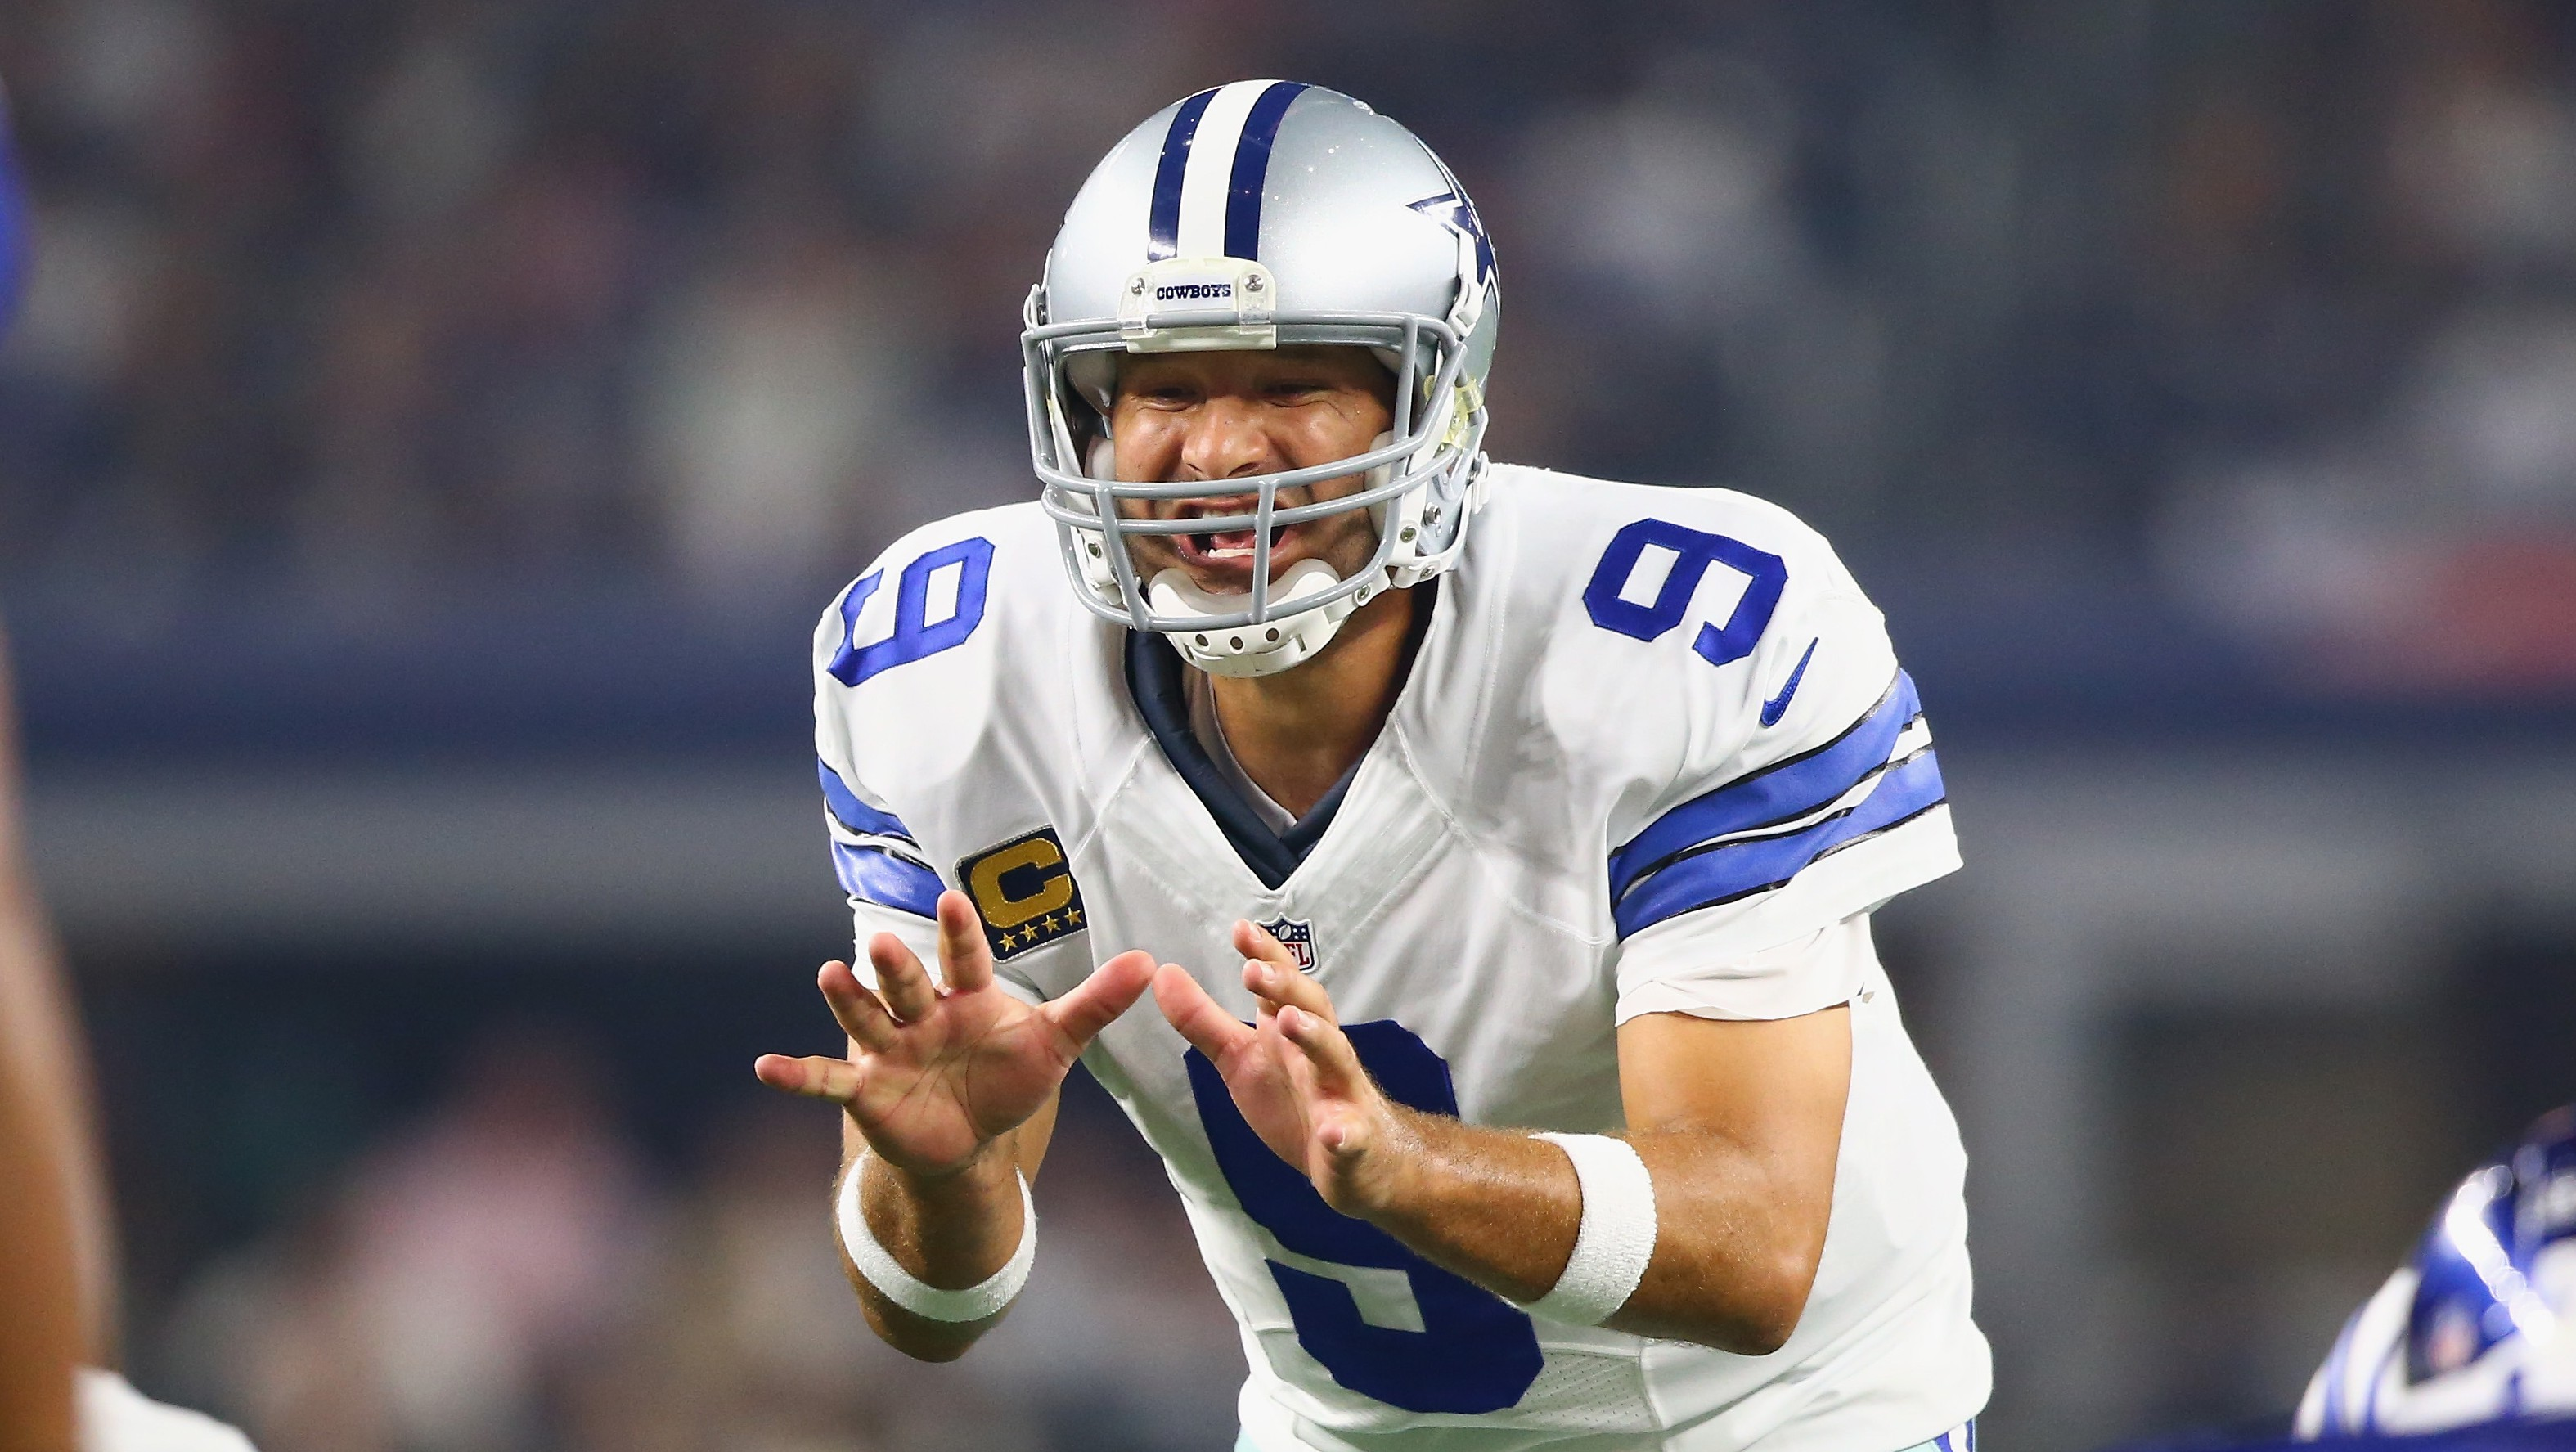 Tony Romo led the Dallas Cowboys to a last-second win Sunday night in Week 1. (Getty)